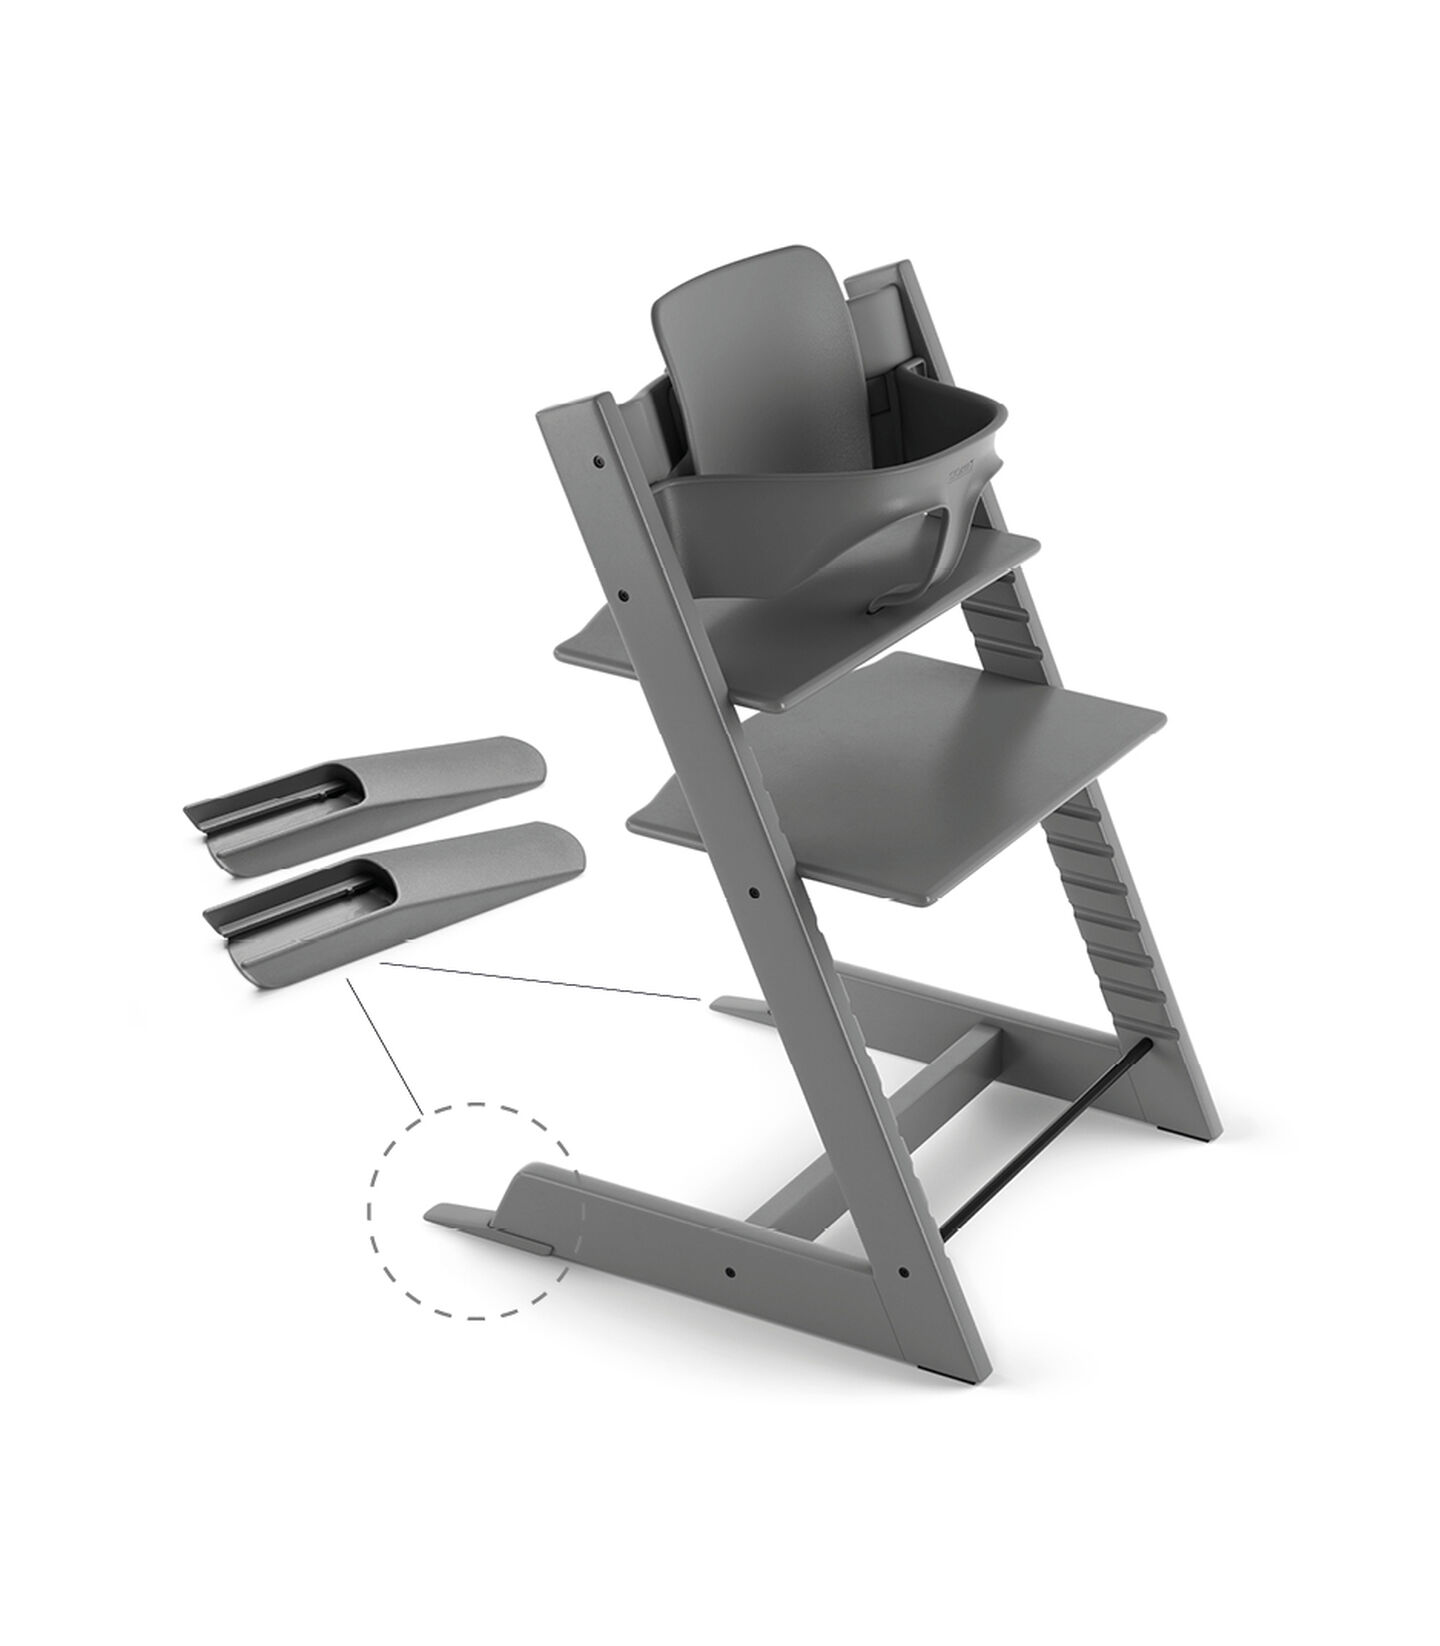 Tripp Trapp® Chair Storm Grey, Beech, with Baby Set. view 2